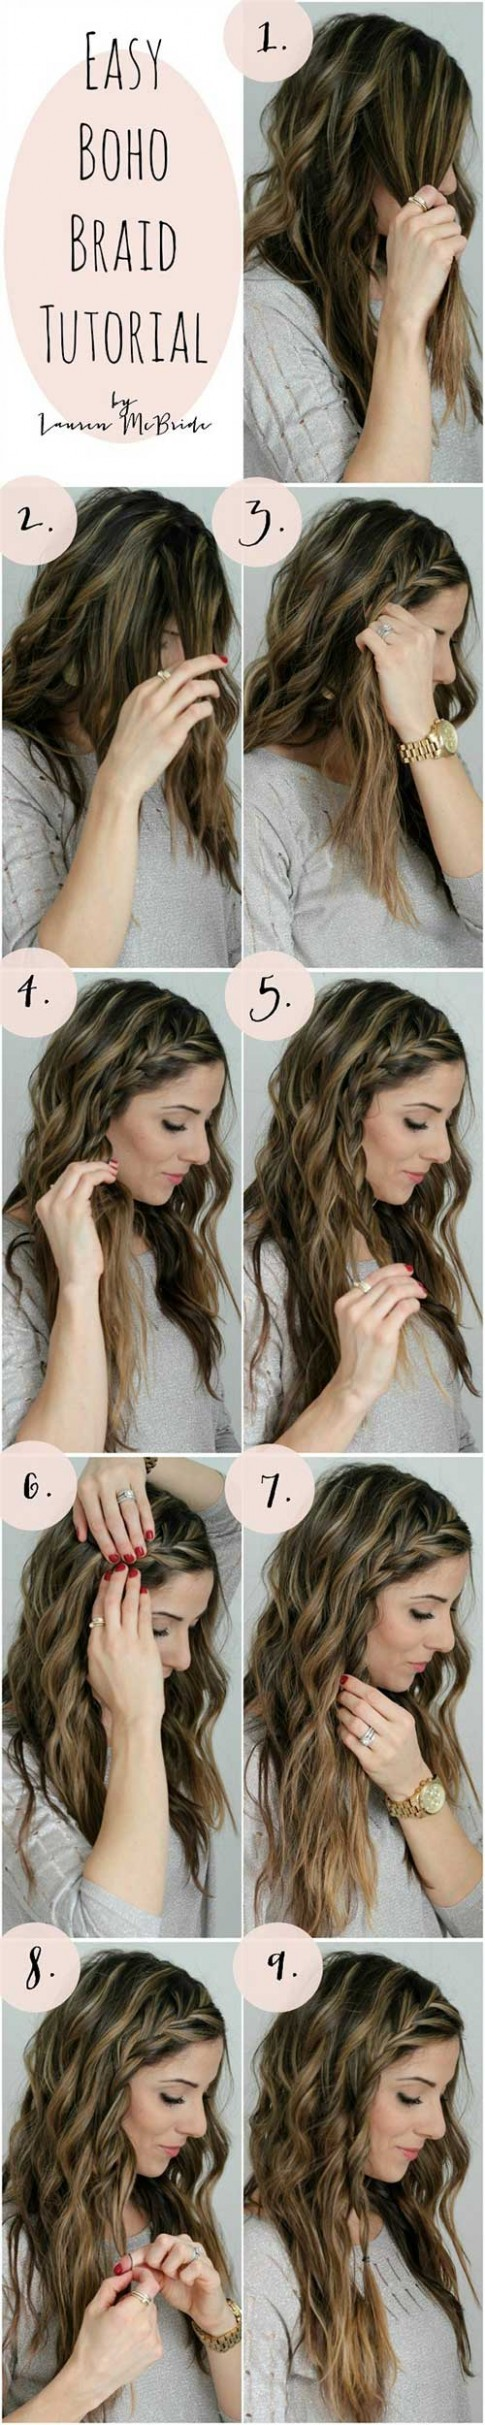 10 Awesome Hairstyles For Girls With Long Hair